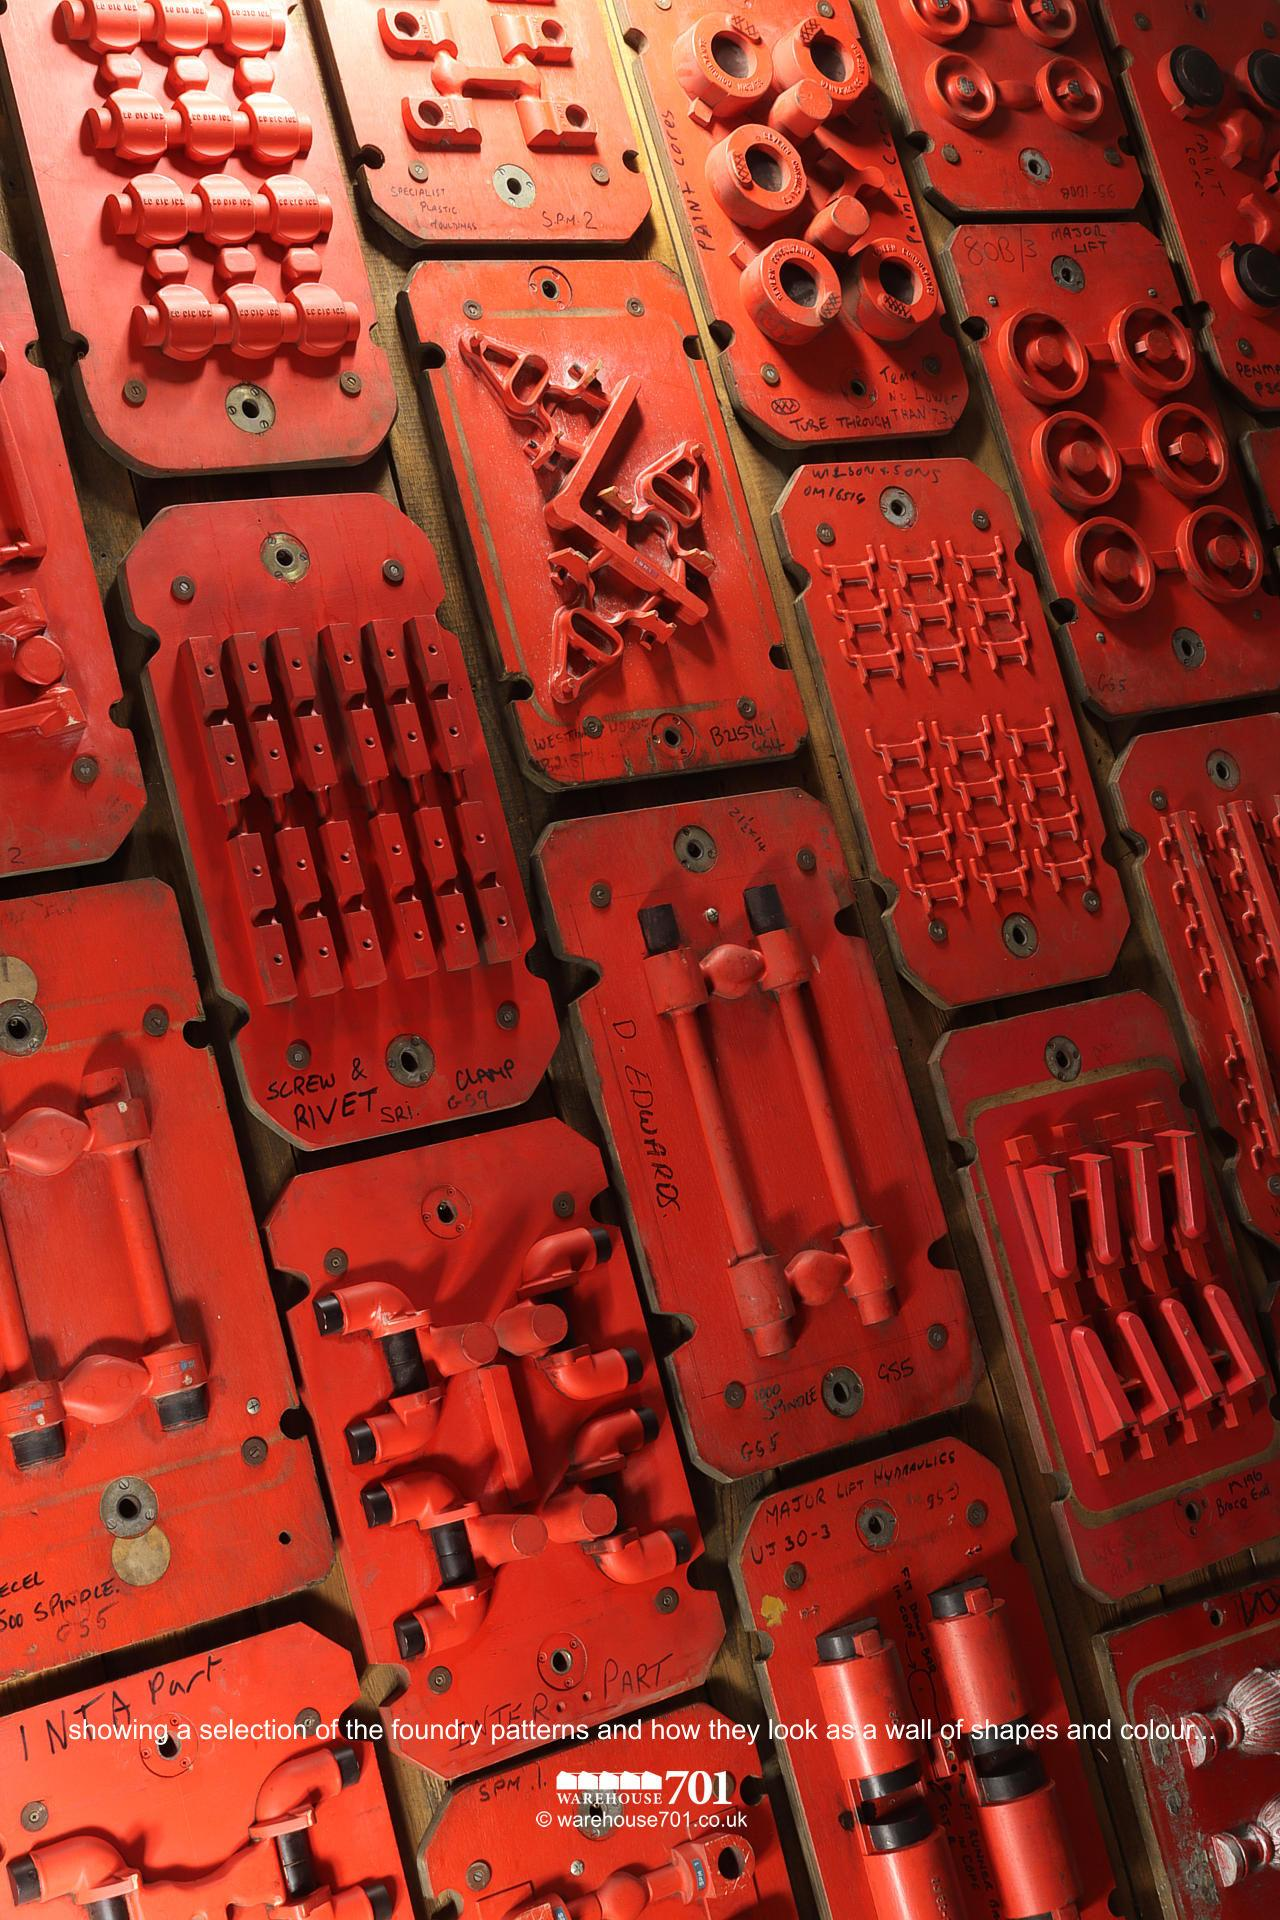 Double-Sided Foundry Patterns or Moulds (No's 25, 26, 27) for Shop, Retail and Home Display #6